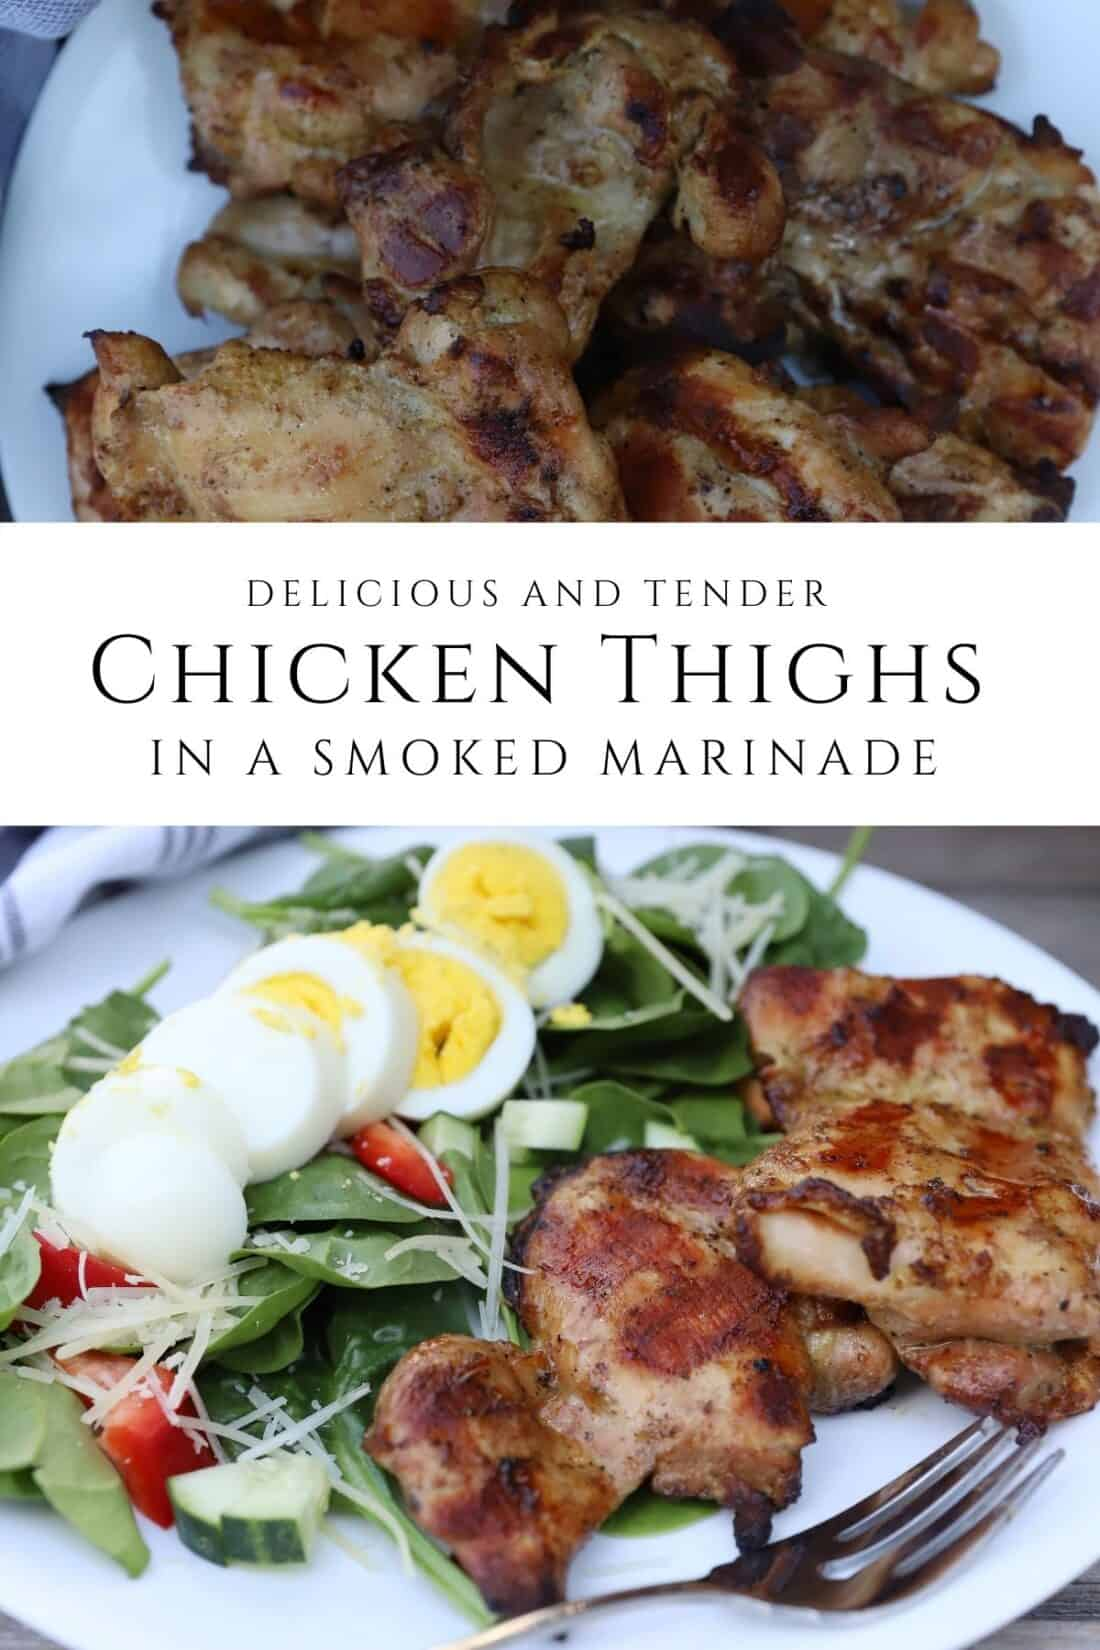 Grilled Smoked Chicken Thighs on a white plate